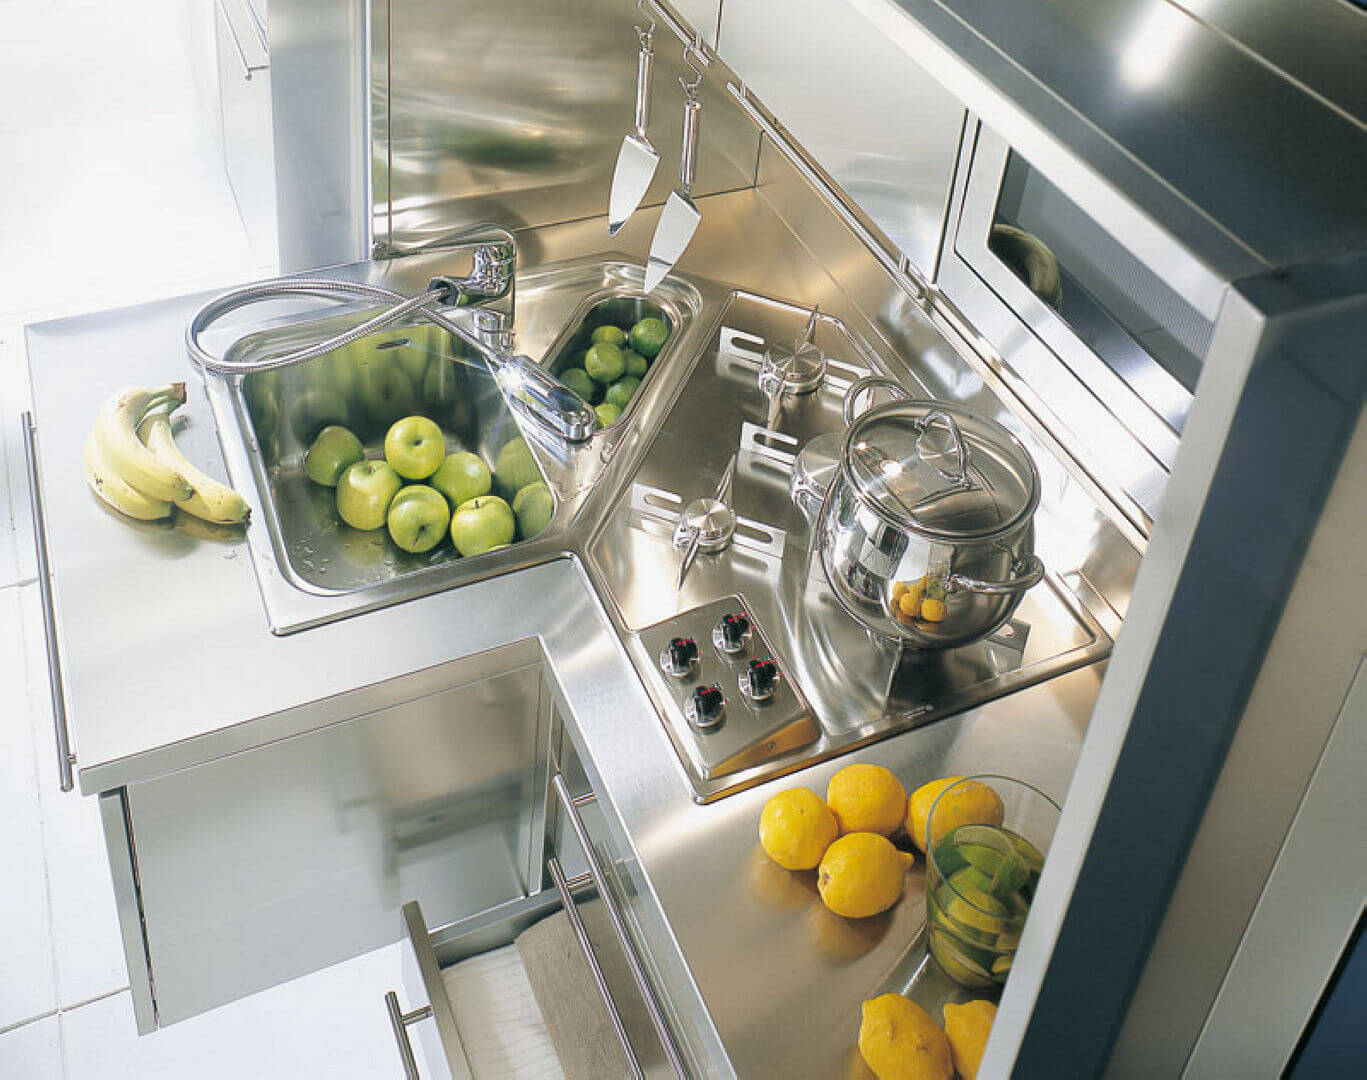 Arca Cucine Italy - Domestic stainless steel kitchens - 10 2 - Wall - Cooking Dry Embossing